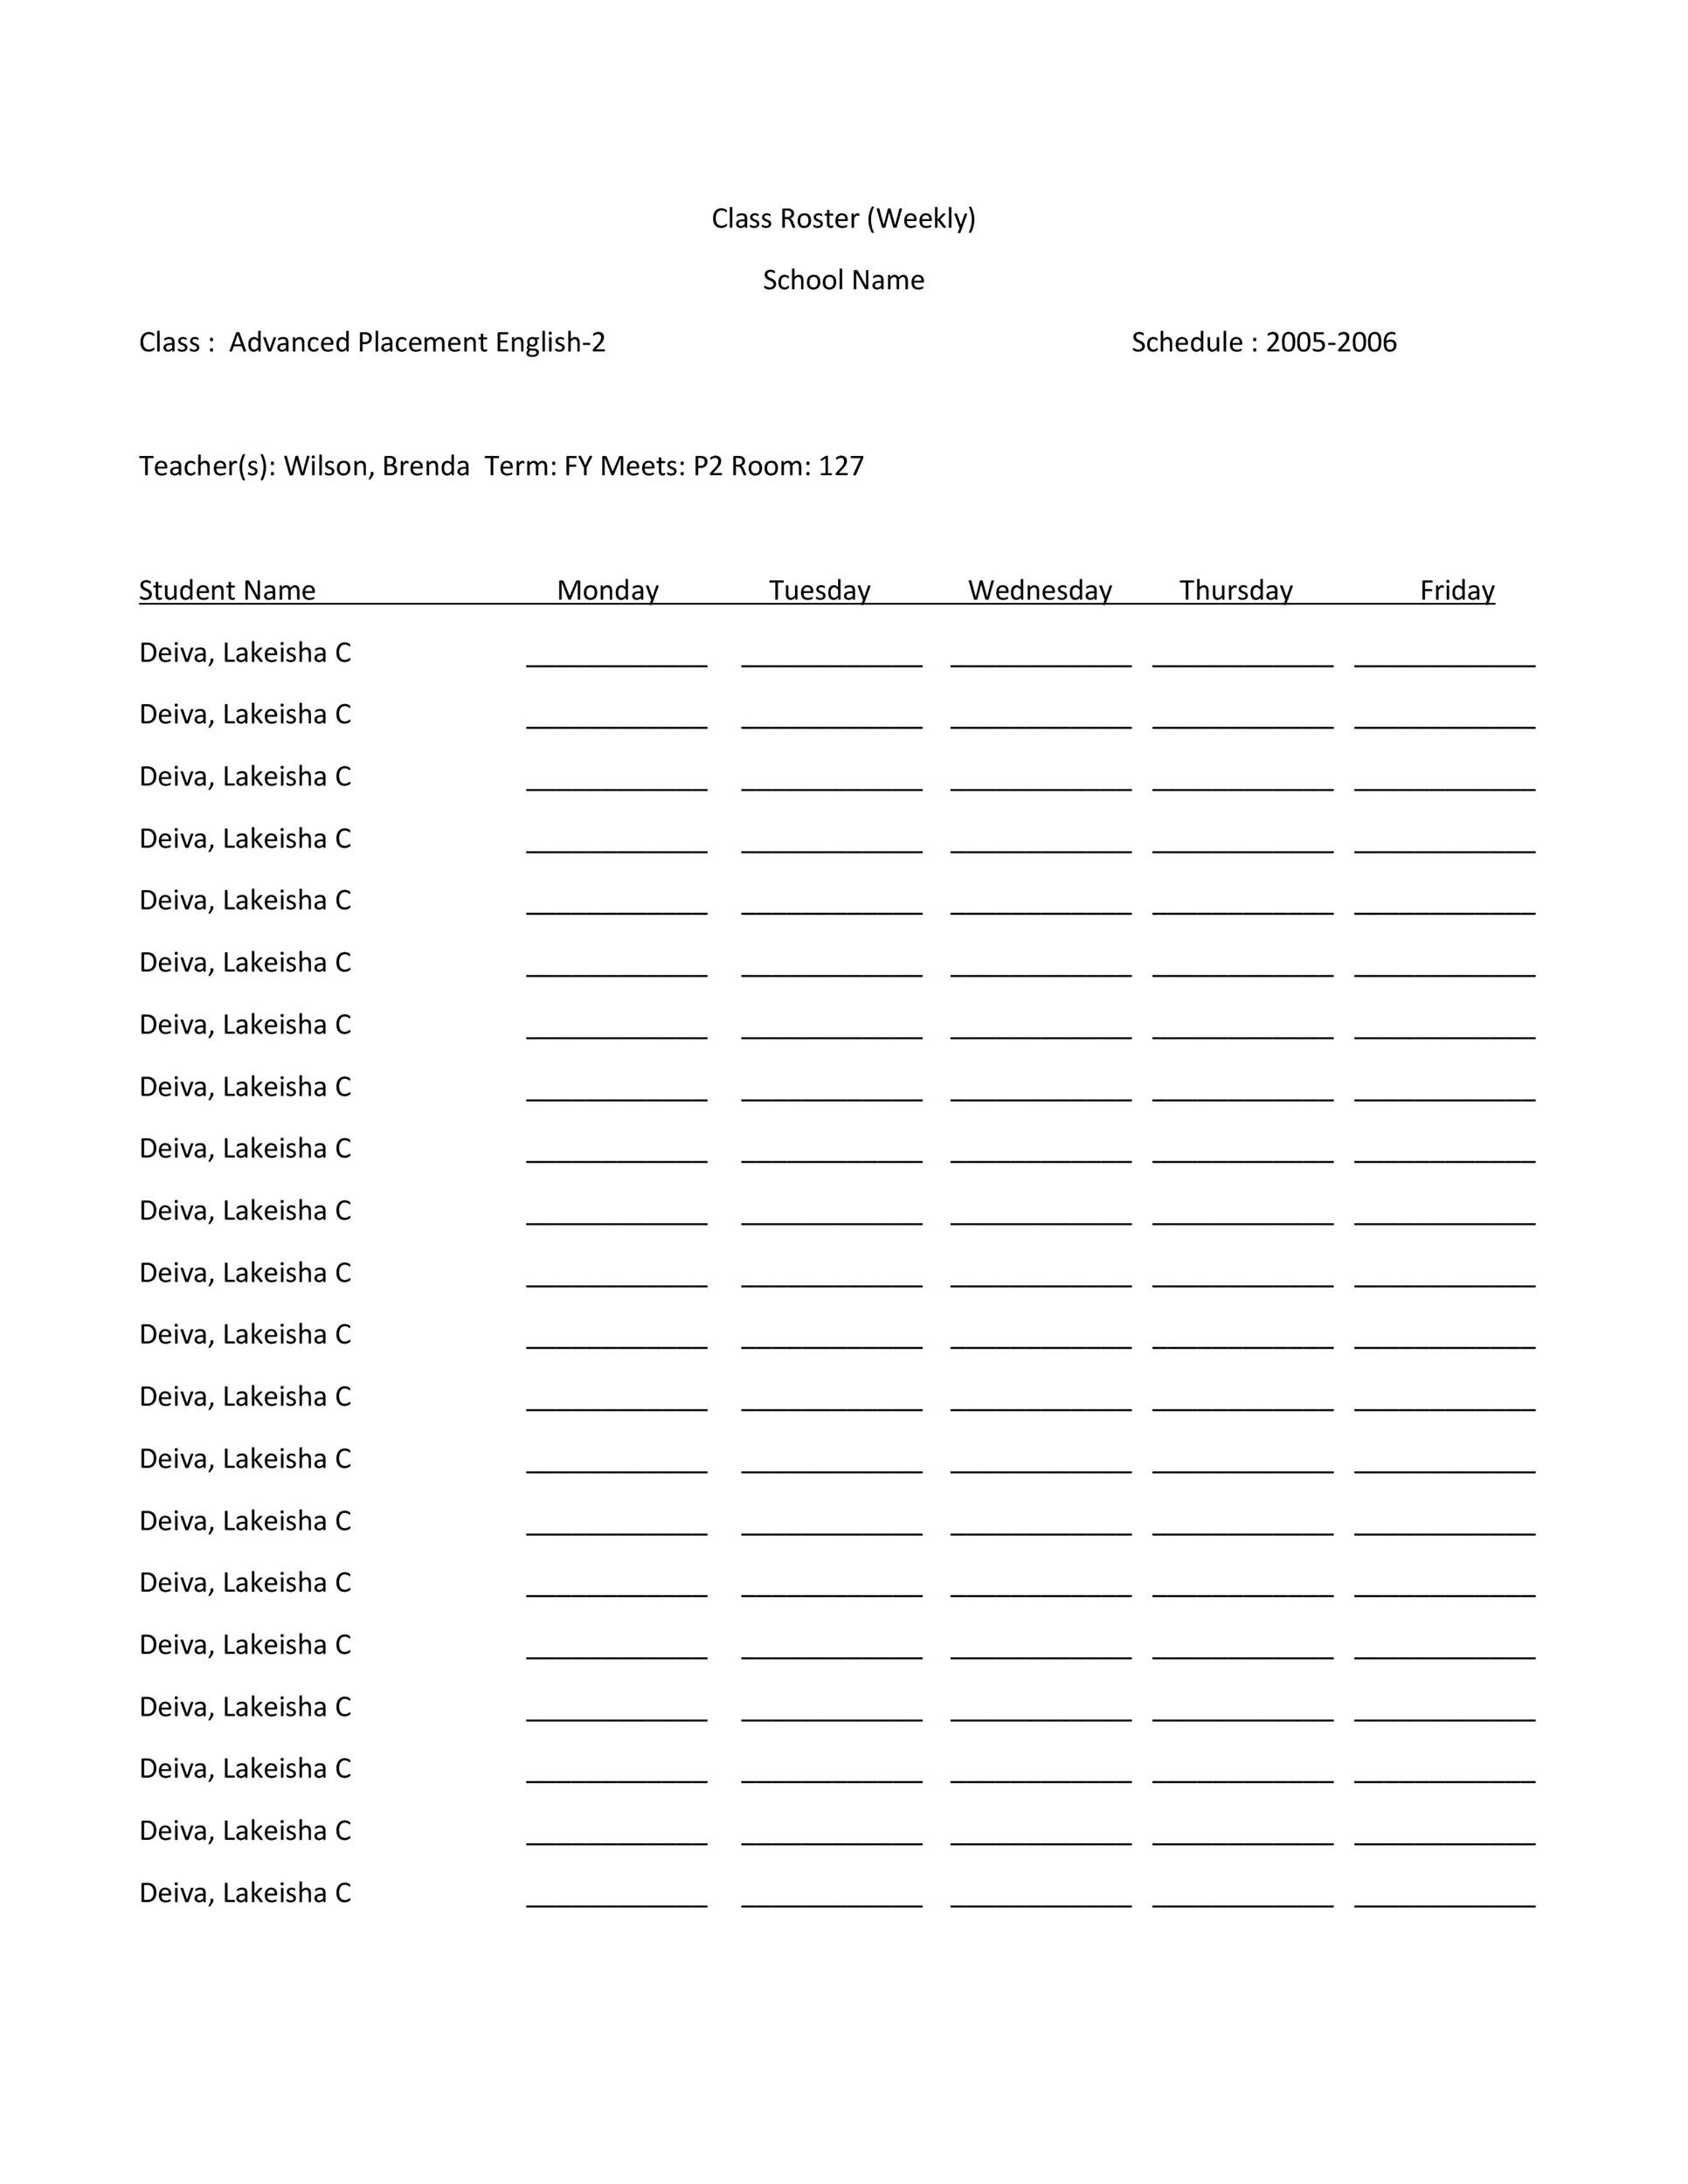 37 Class Roster Templates [Student Roster Templates for